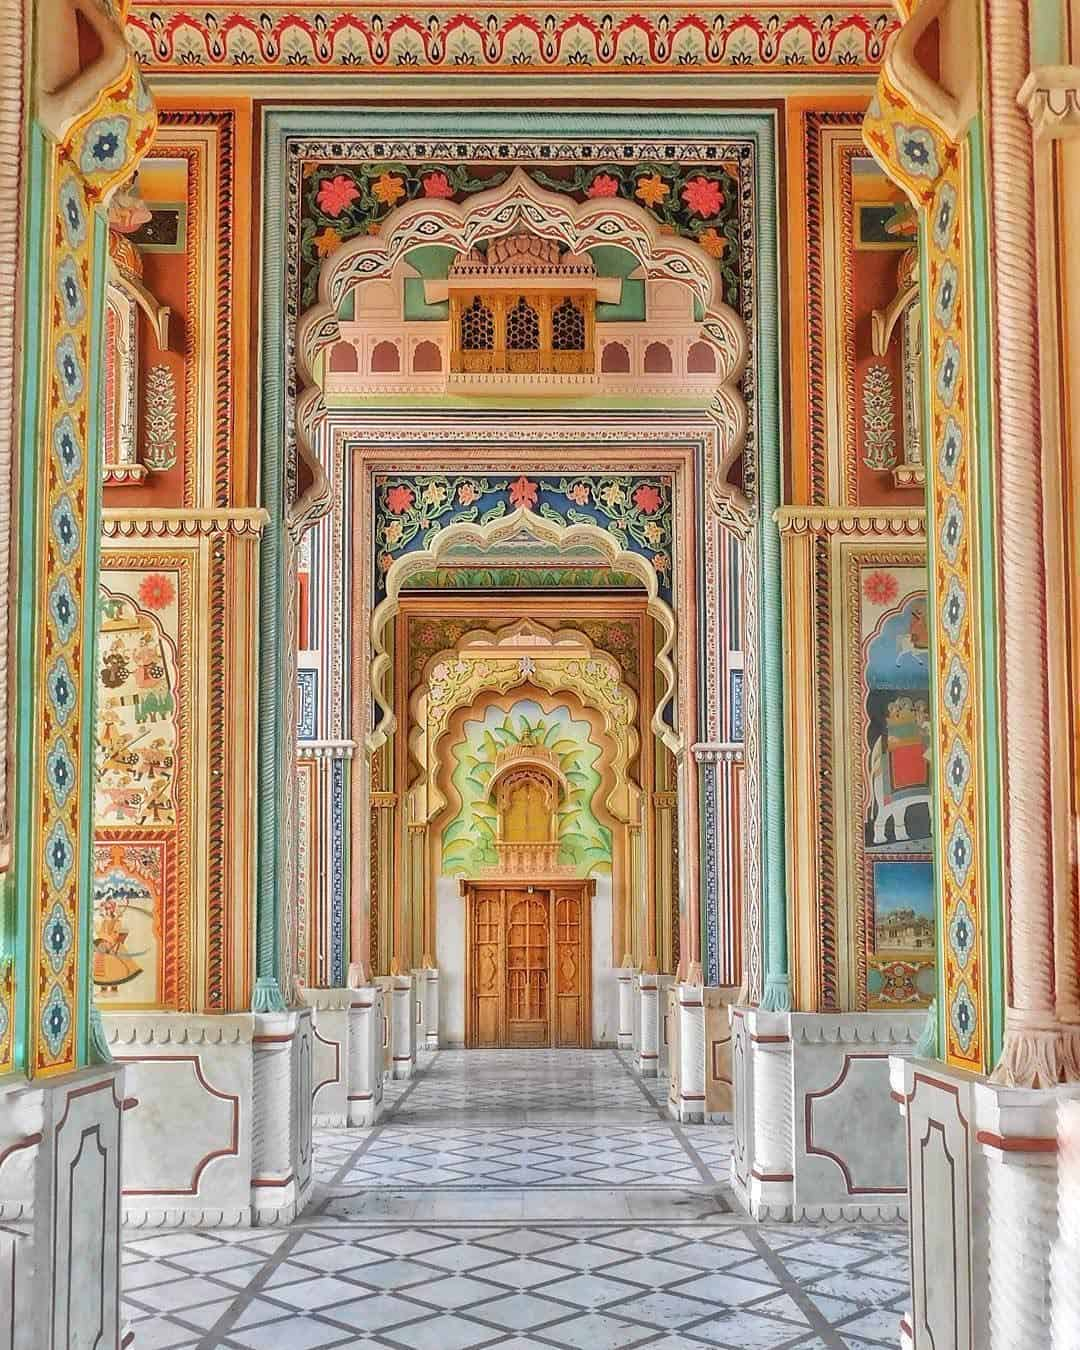 Best Instagrammable Places In Jaipur - Patrika Gate